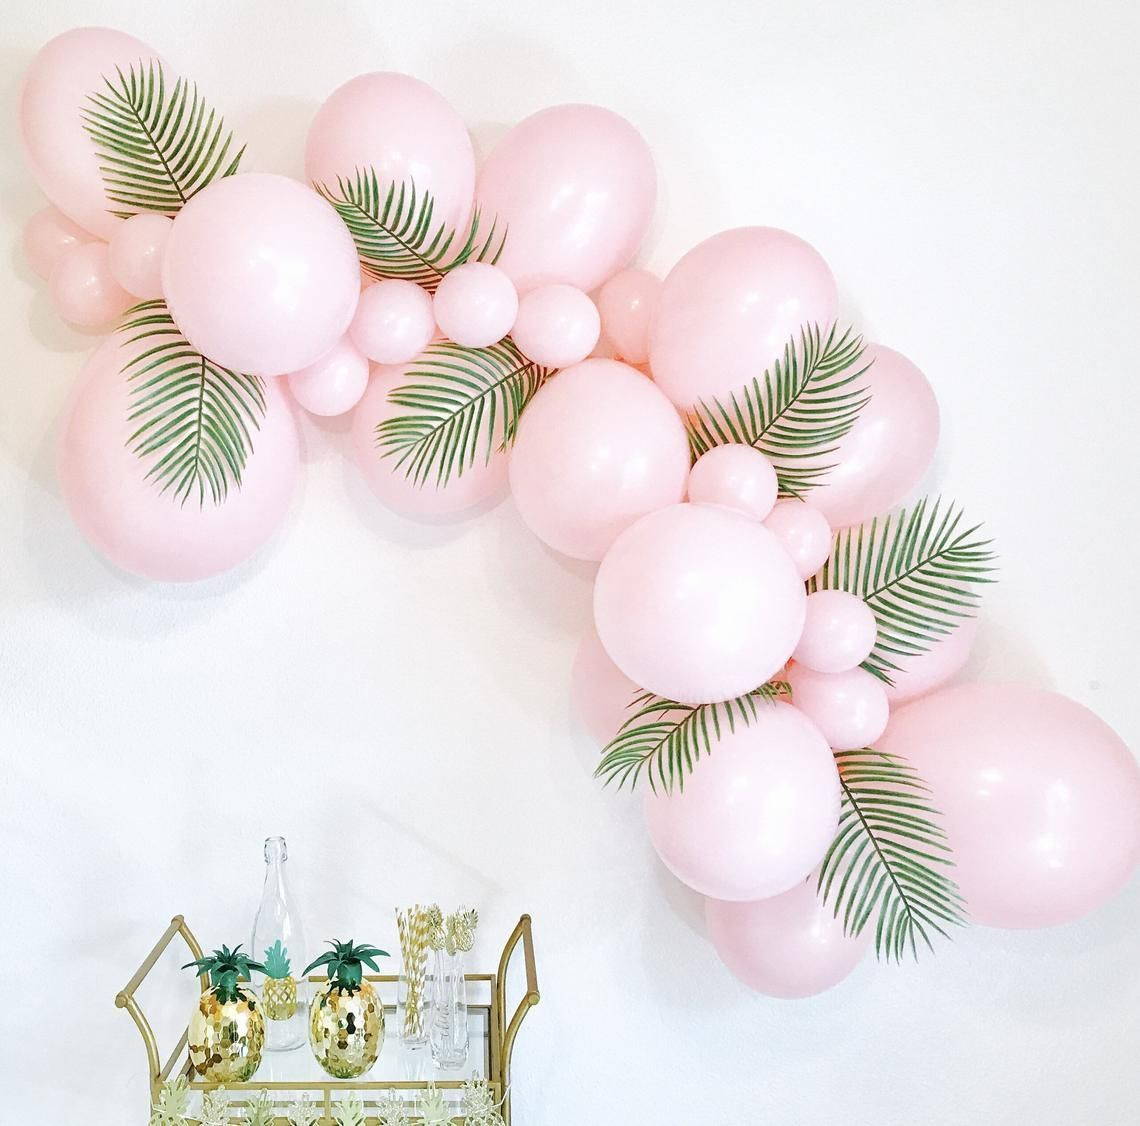 Pink Balloon Garlands Balloon Garlands DIY Balloon Garland Tropical Balloon Garland Tropical Bachelorette Pink Balloon Arch Pink Latex #balloonarch